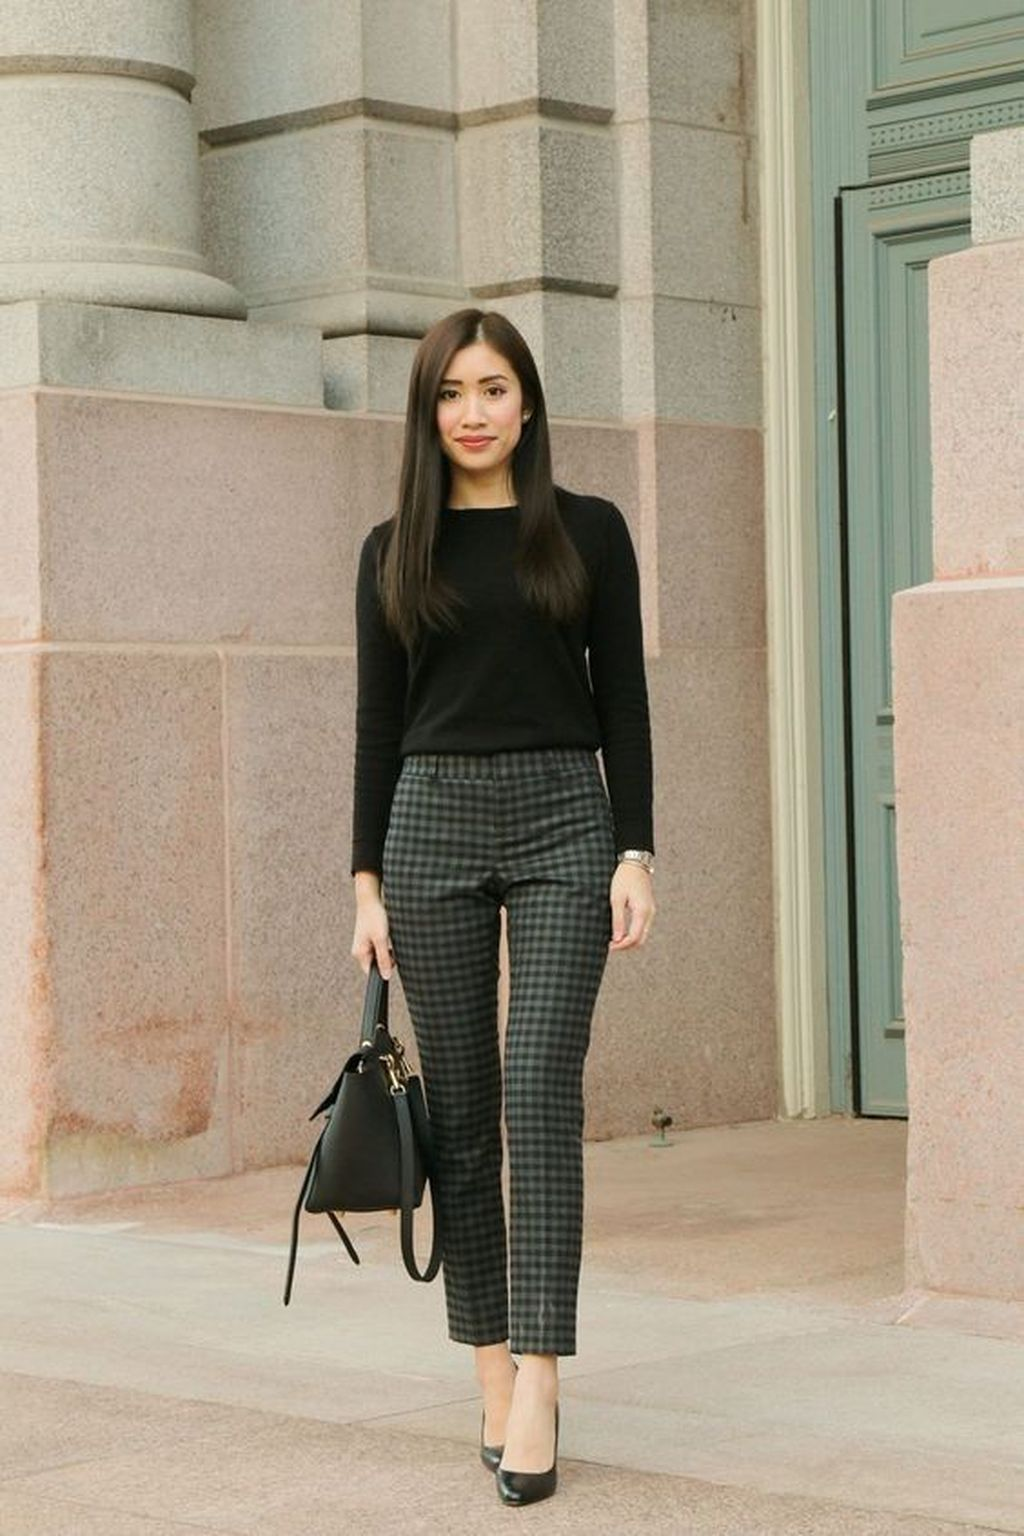 30 Chic Professional Work Outfits Ideas For Women Over 30 Professional Work Outfit Office Wear Women Fashionable Work Outfit